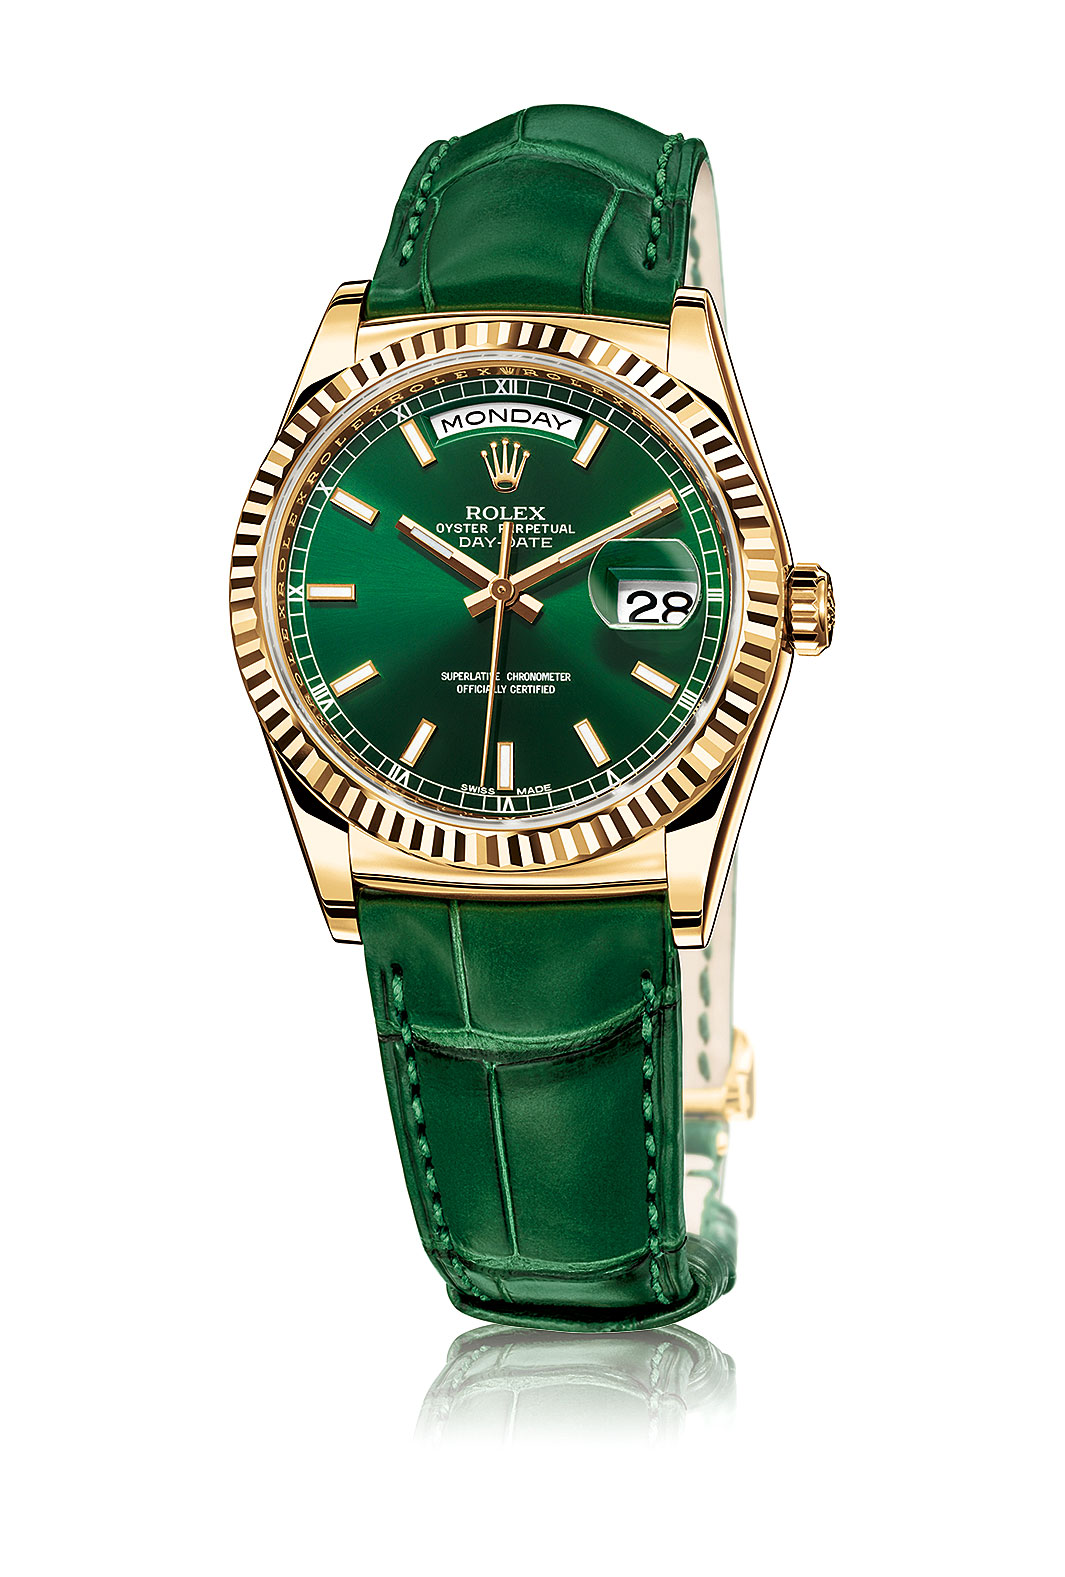 Name:  Rolex-Day-Date-BaselWorld-2013-Green-Dial.jpg Views: 1504 Size:  252.7 KB